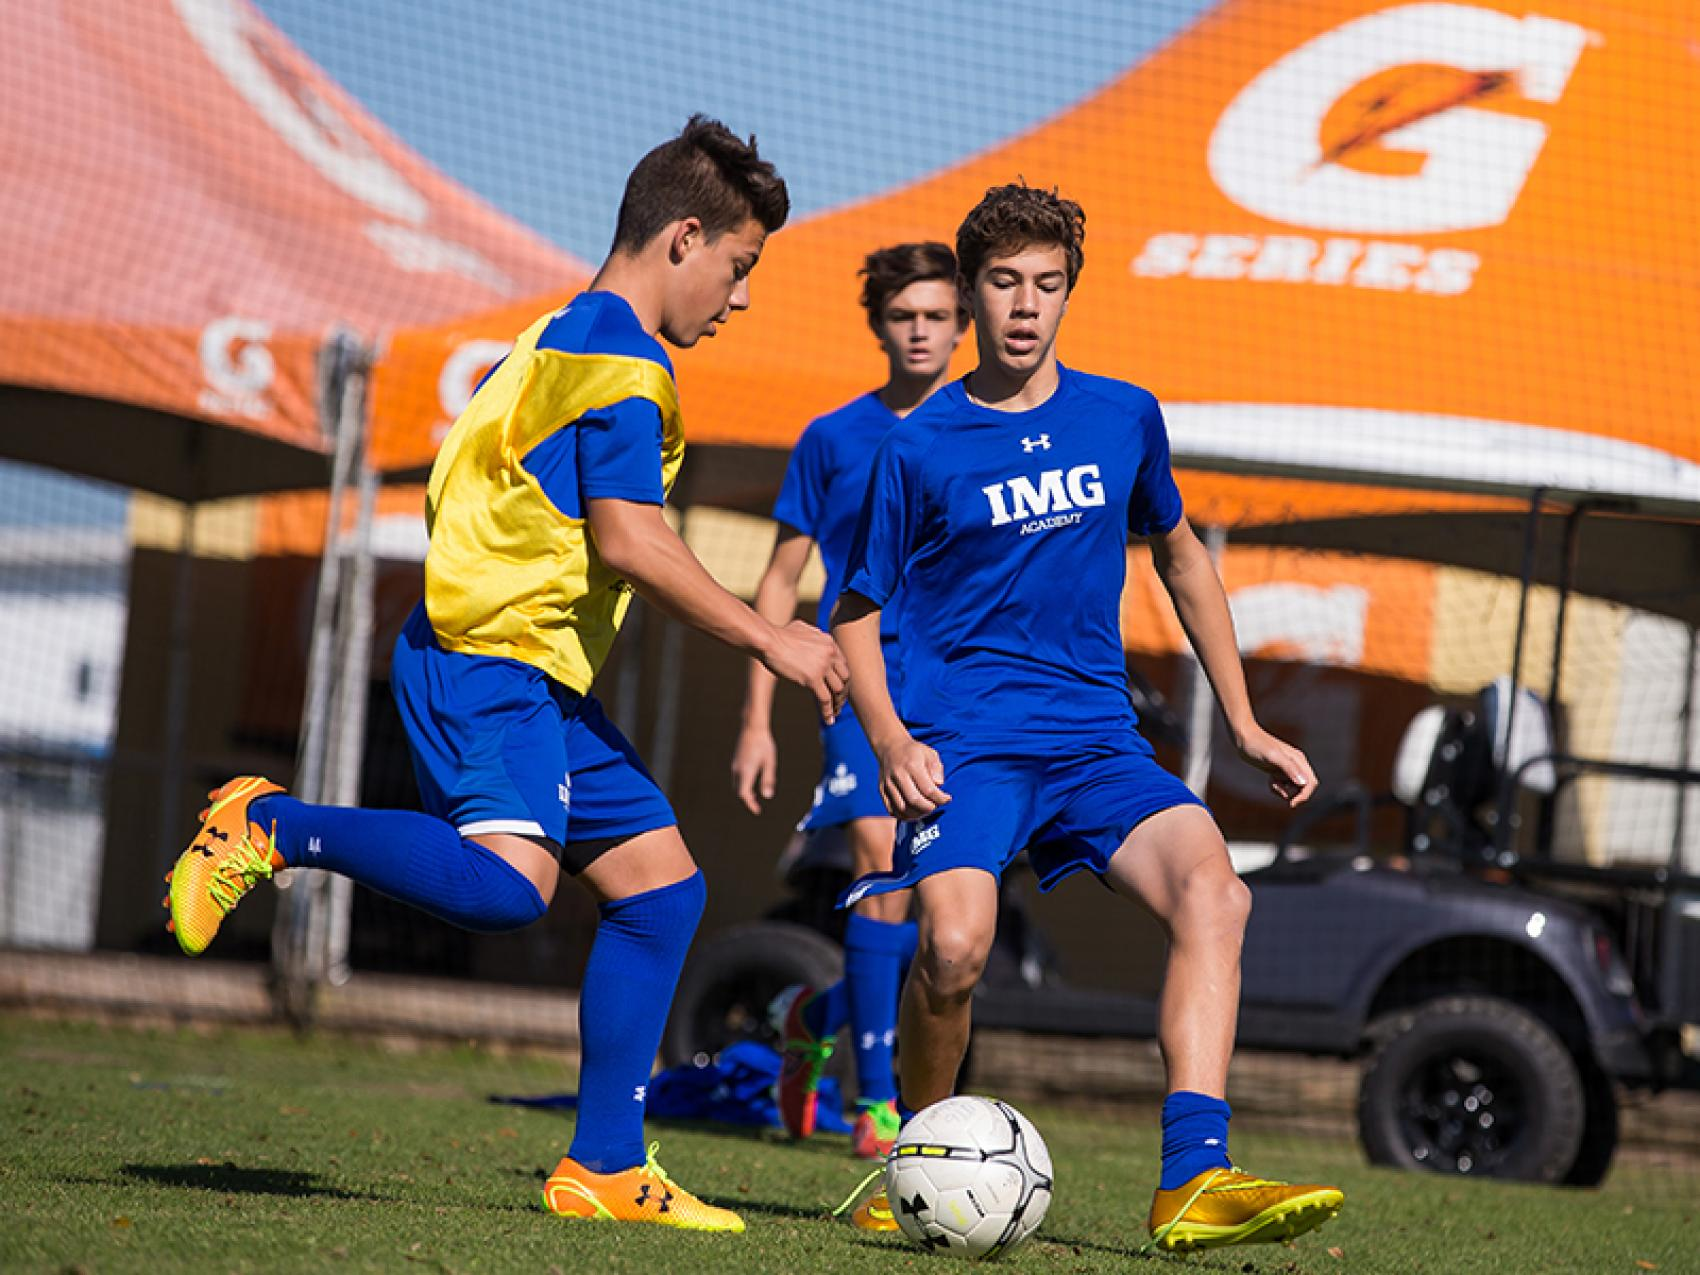 Img: IMG Cup - Boys Invitational